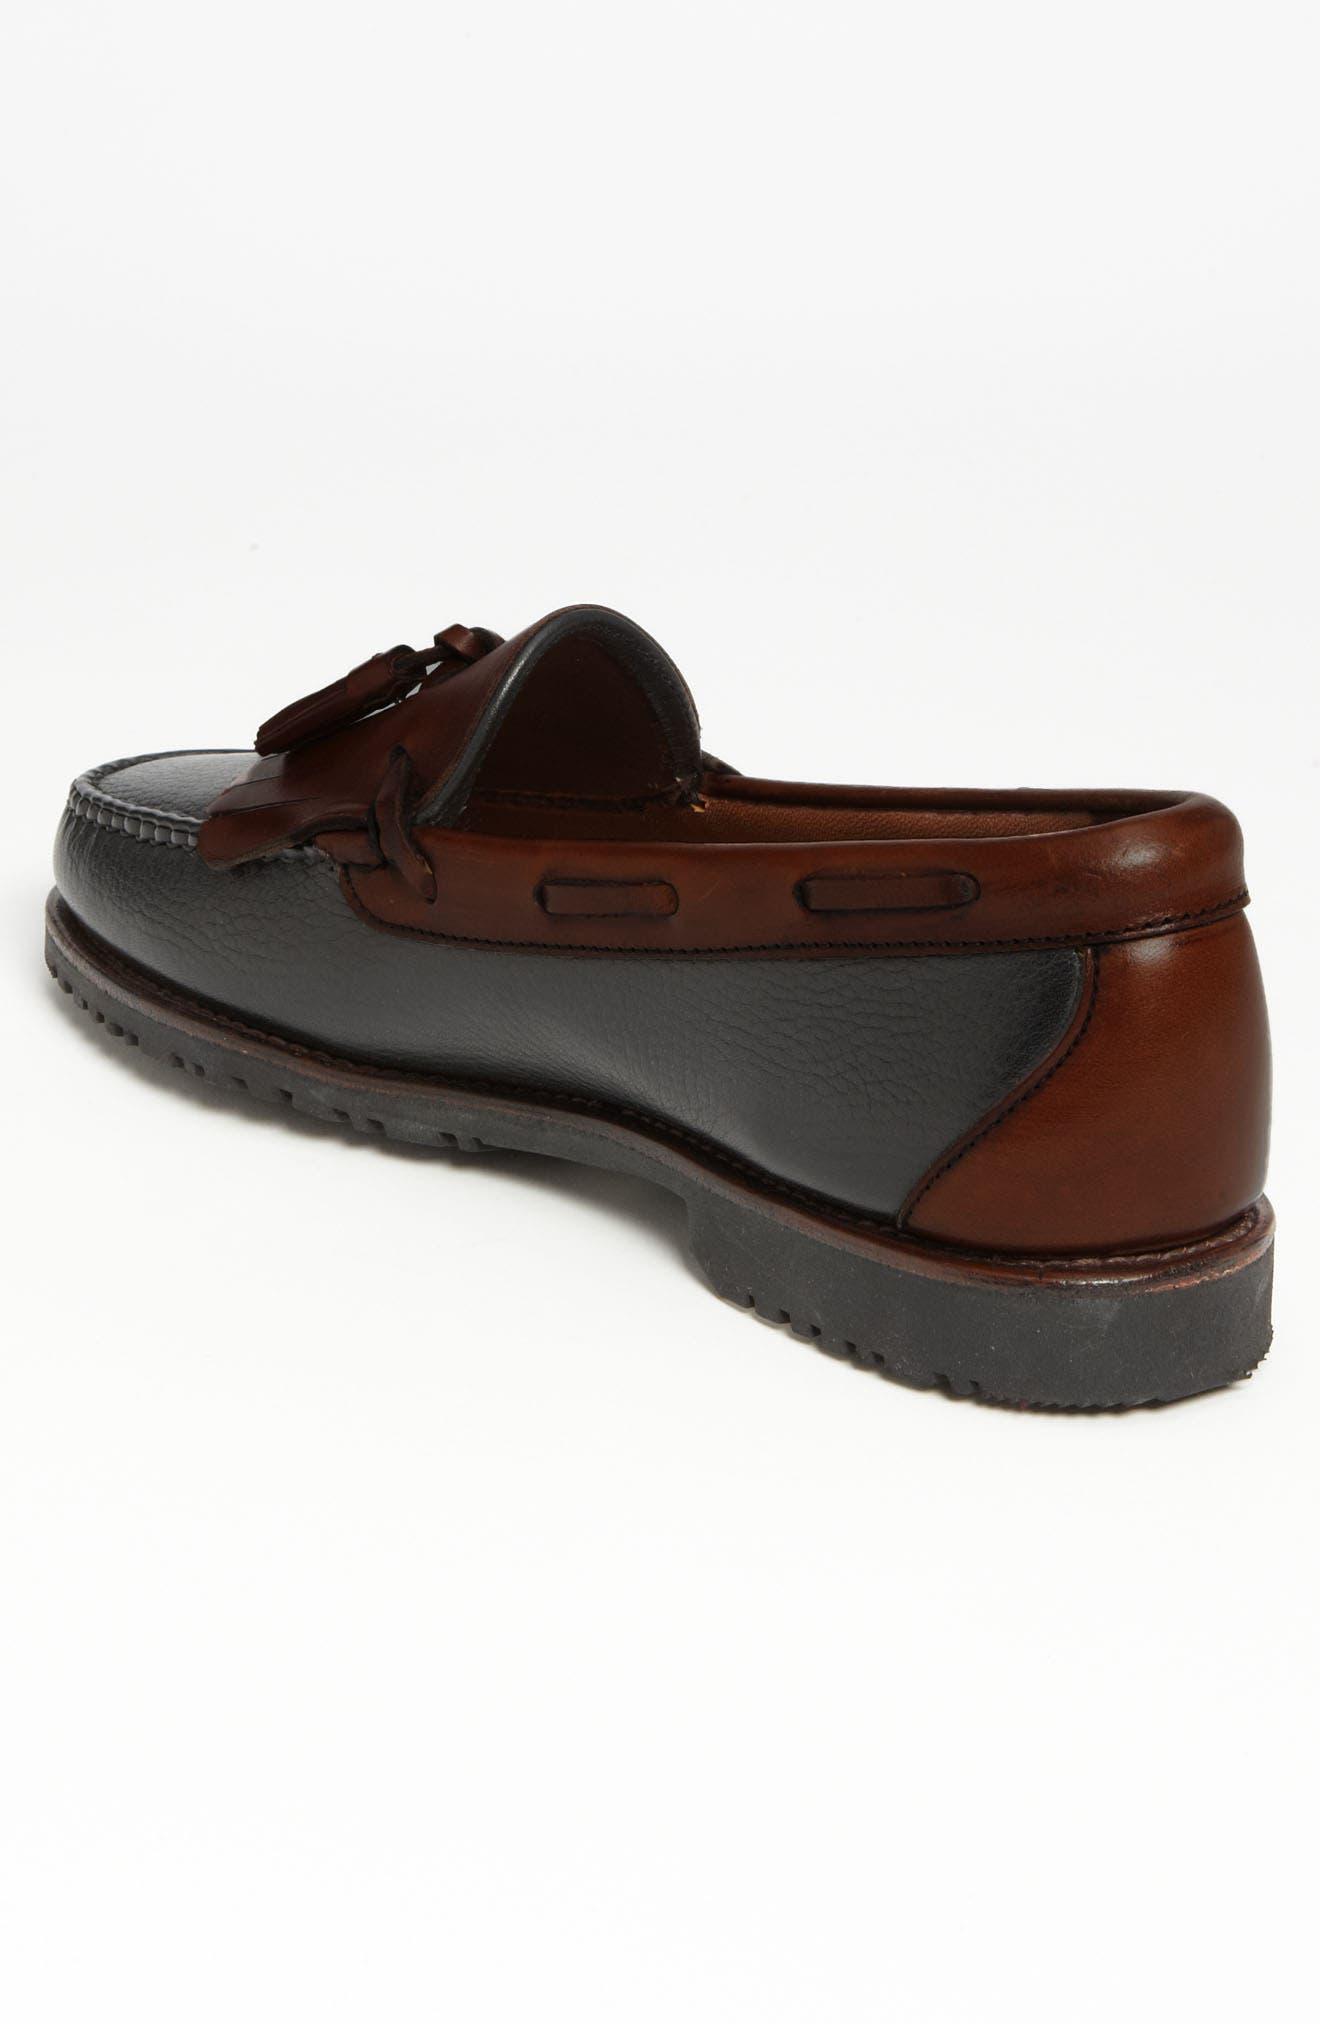 ALLEN EDMONDS, 'Nashua' Tassel Loafer, Alternate thumbnail 2, color, BLACK/ BROWN